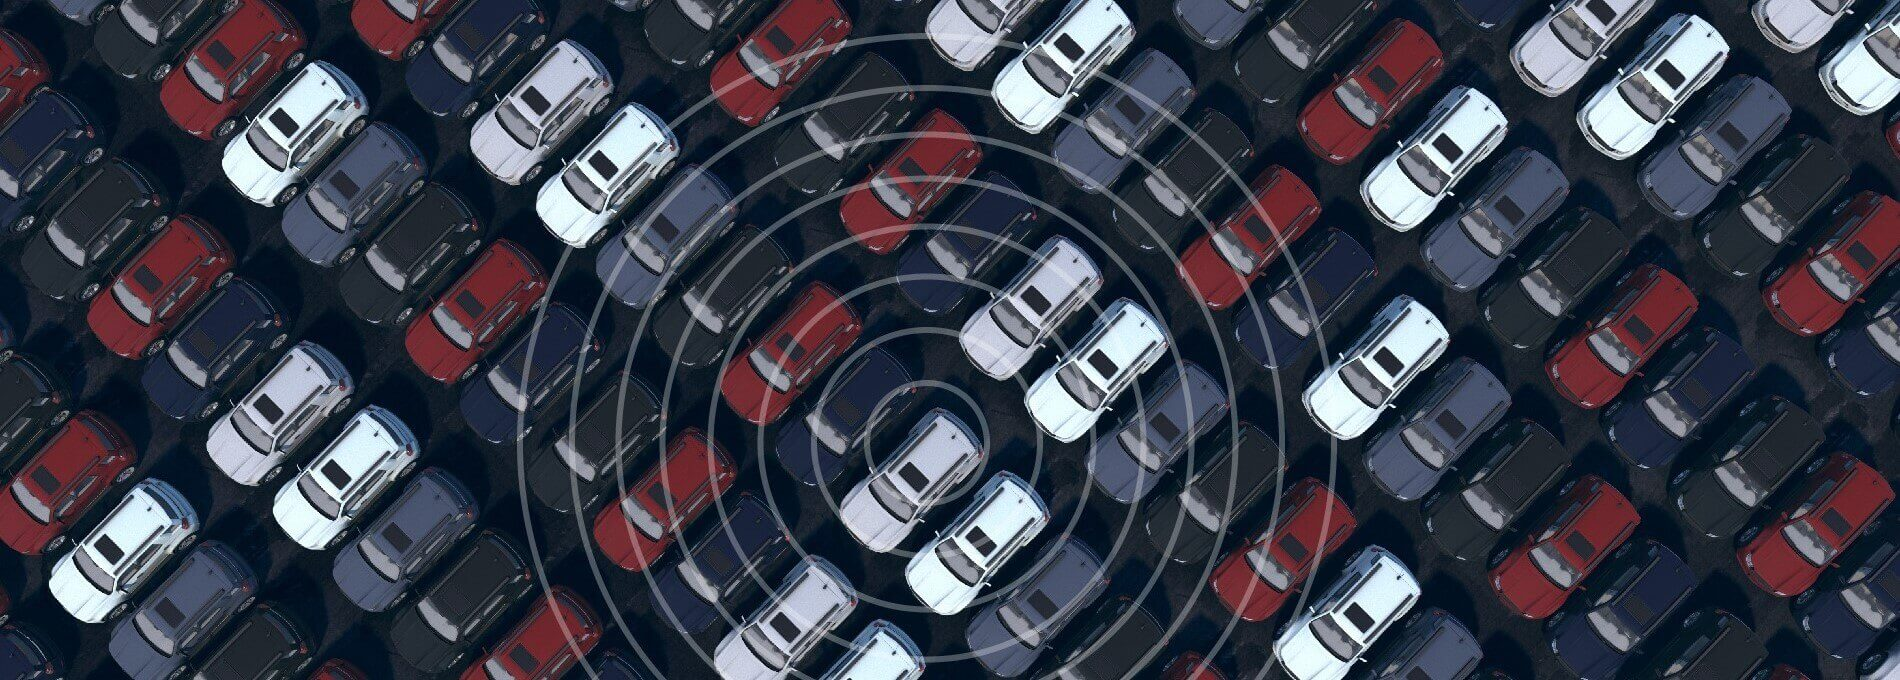 Accuracy of detecting a vehicle presence/absence